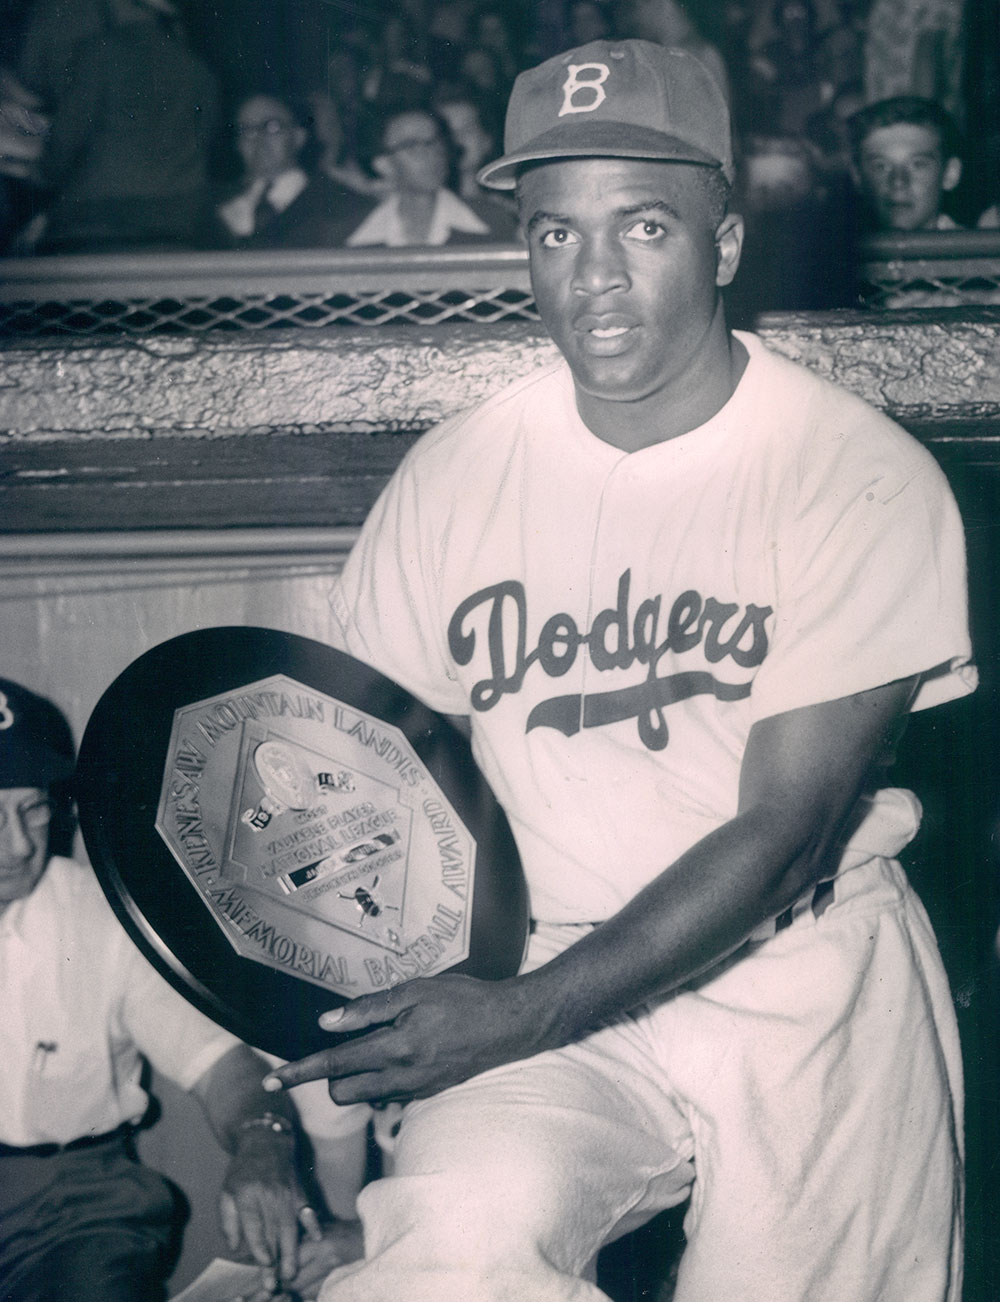 Jackie Robinson Through the Years: A timeline of some of his greatest moments, plays and achievements